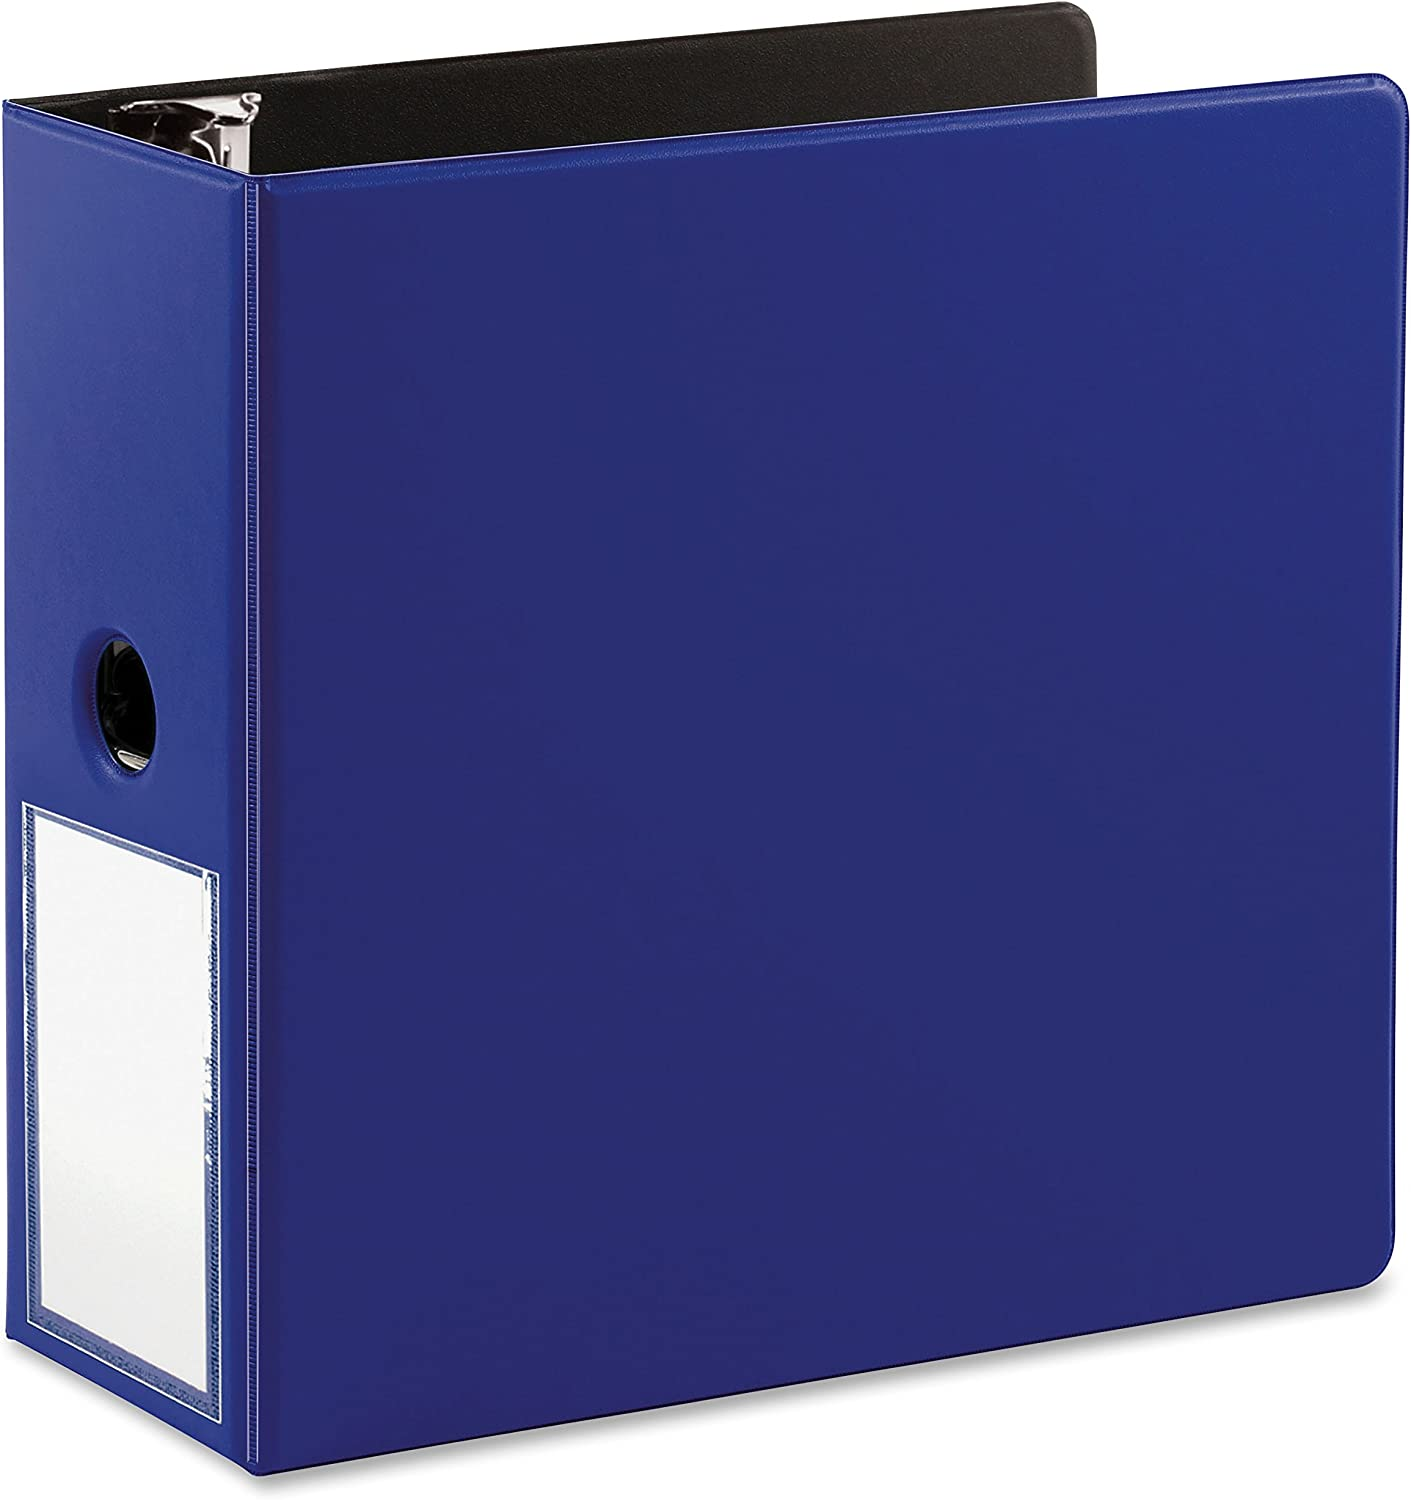 Navy 33123 Business Source 5 D-Ring Binder Binders Office Products ...